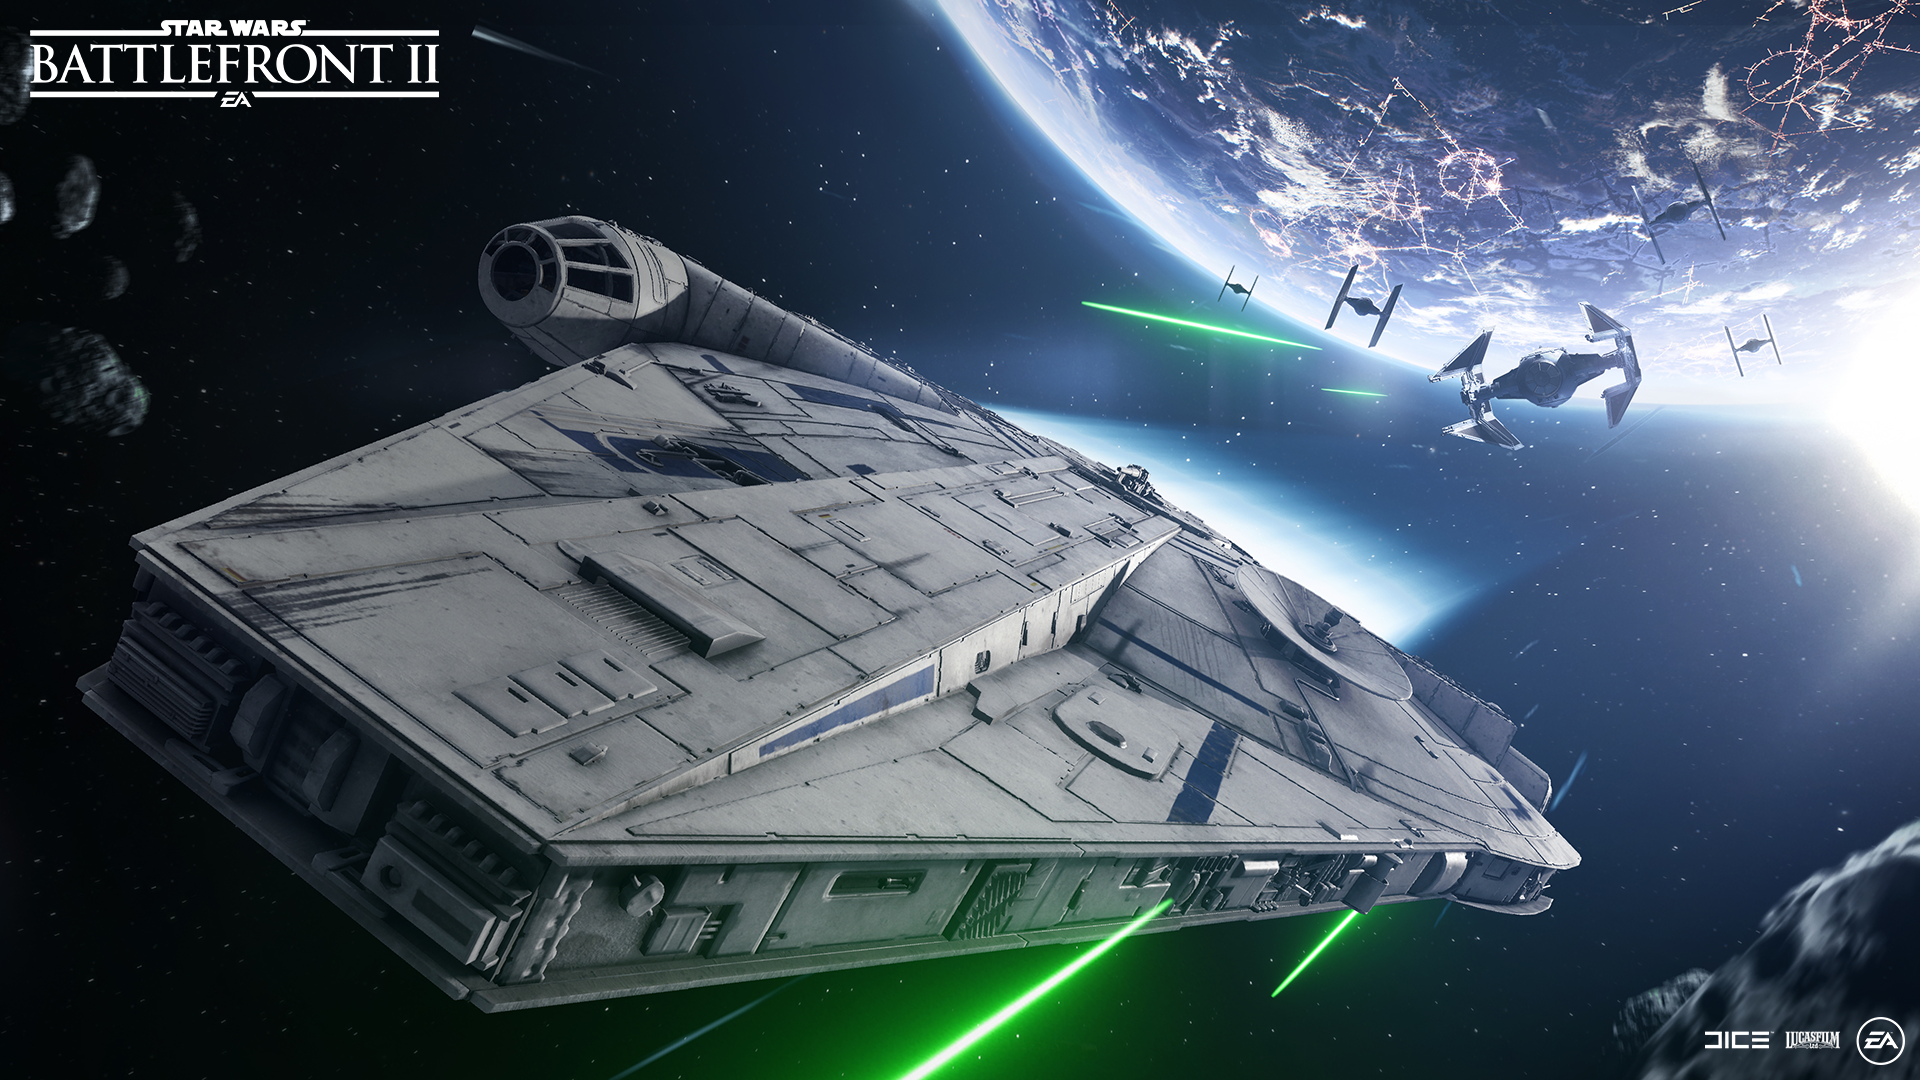 Star Wars Battlefront 2' Capital Supremacy Mode Revealed